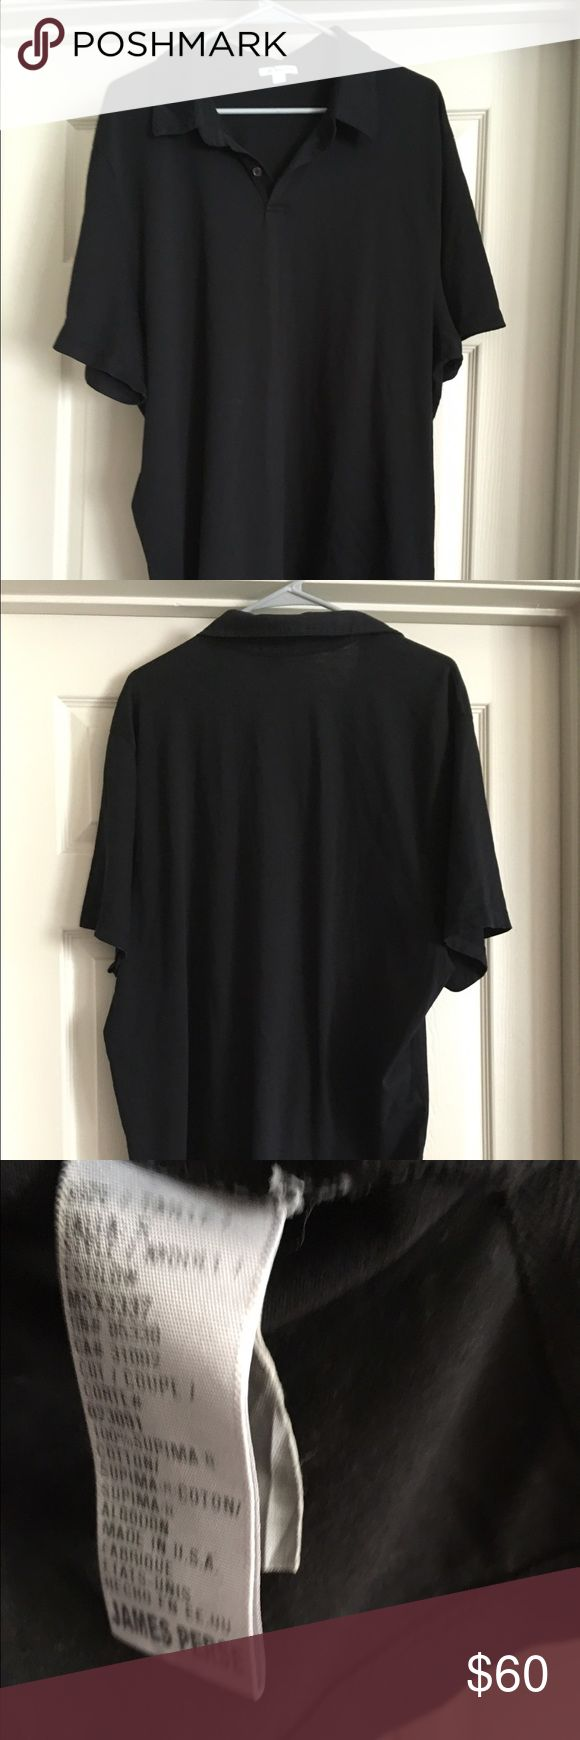 James Perse Sueded cotton polo shirt black 2XL 5 Worn only a few times by a non smoker. James perse size 5 is a us 2XL James Perse Shirts Polos